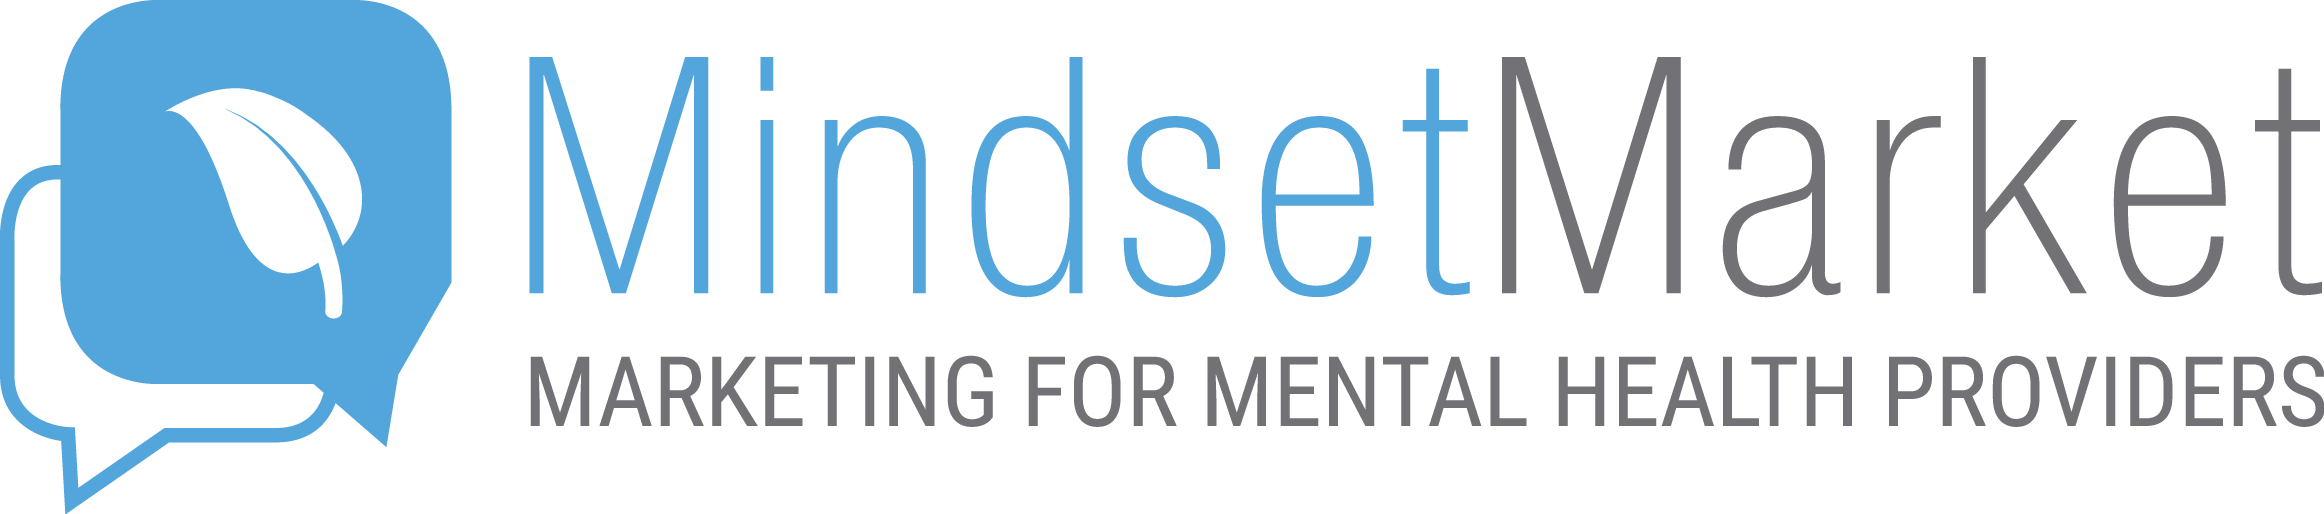 Get More Therapy Clients Through Facebook | Mindset Market